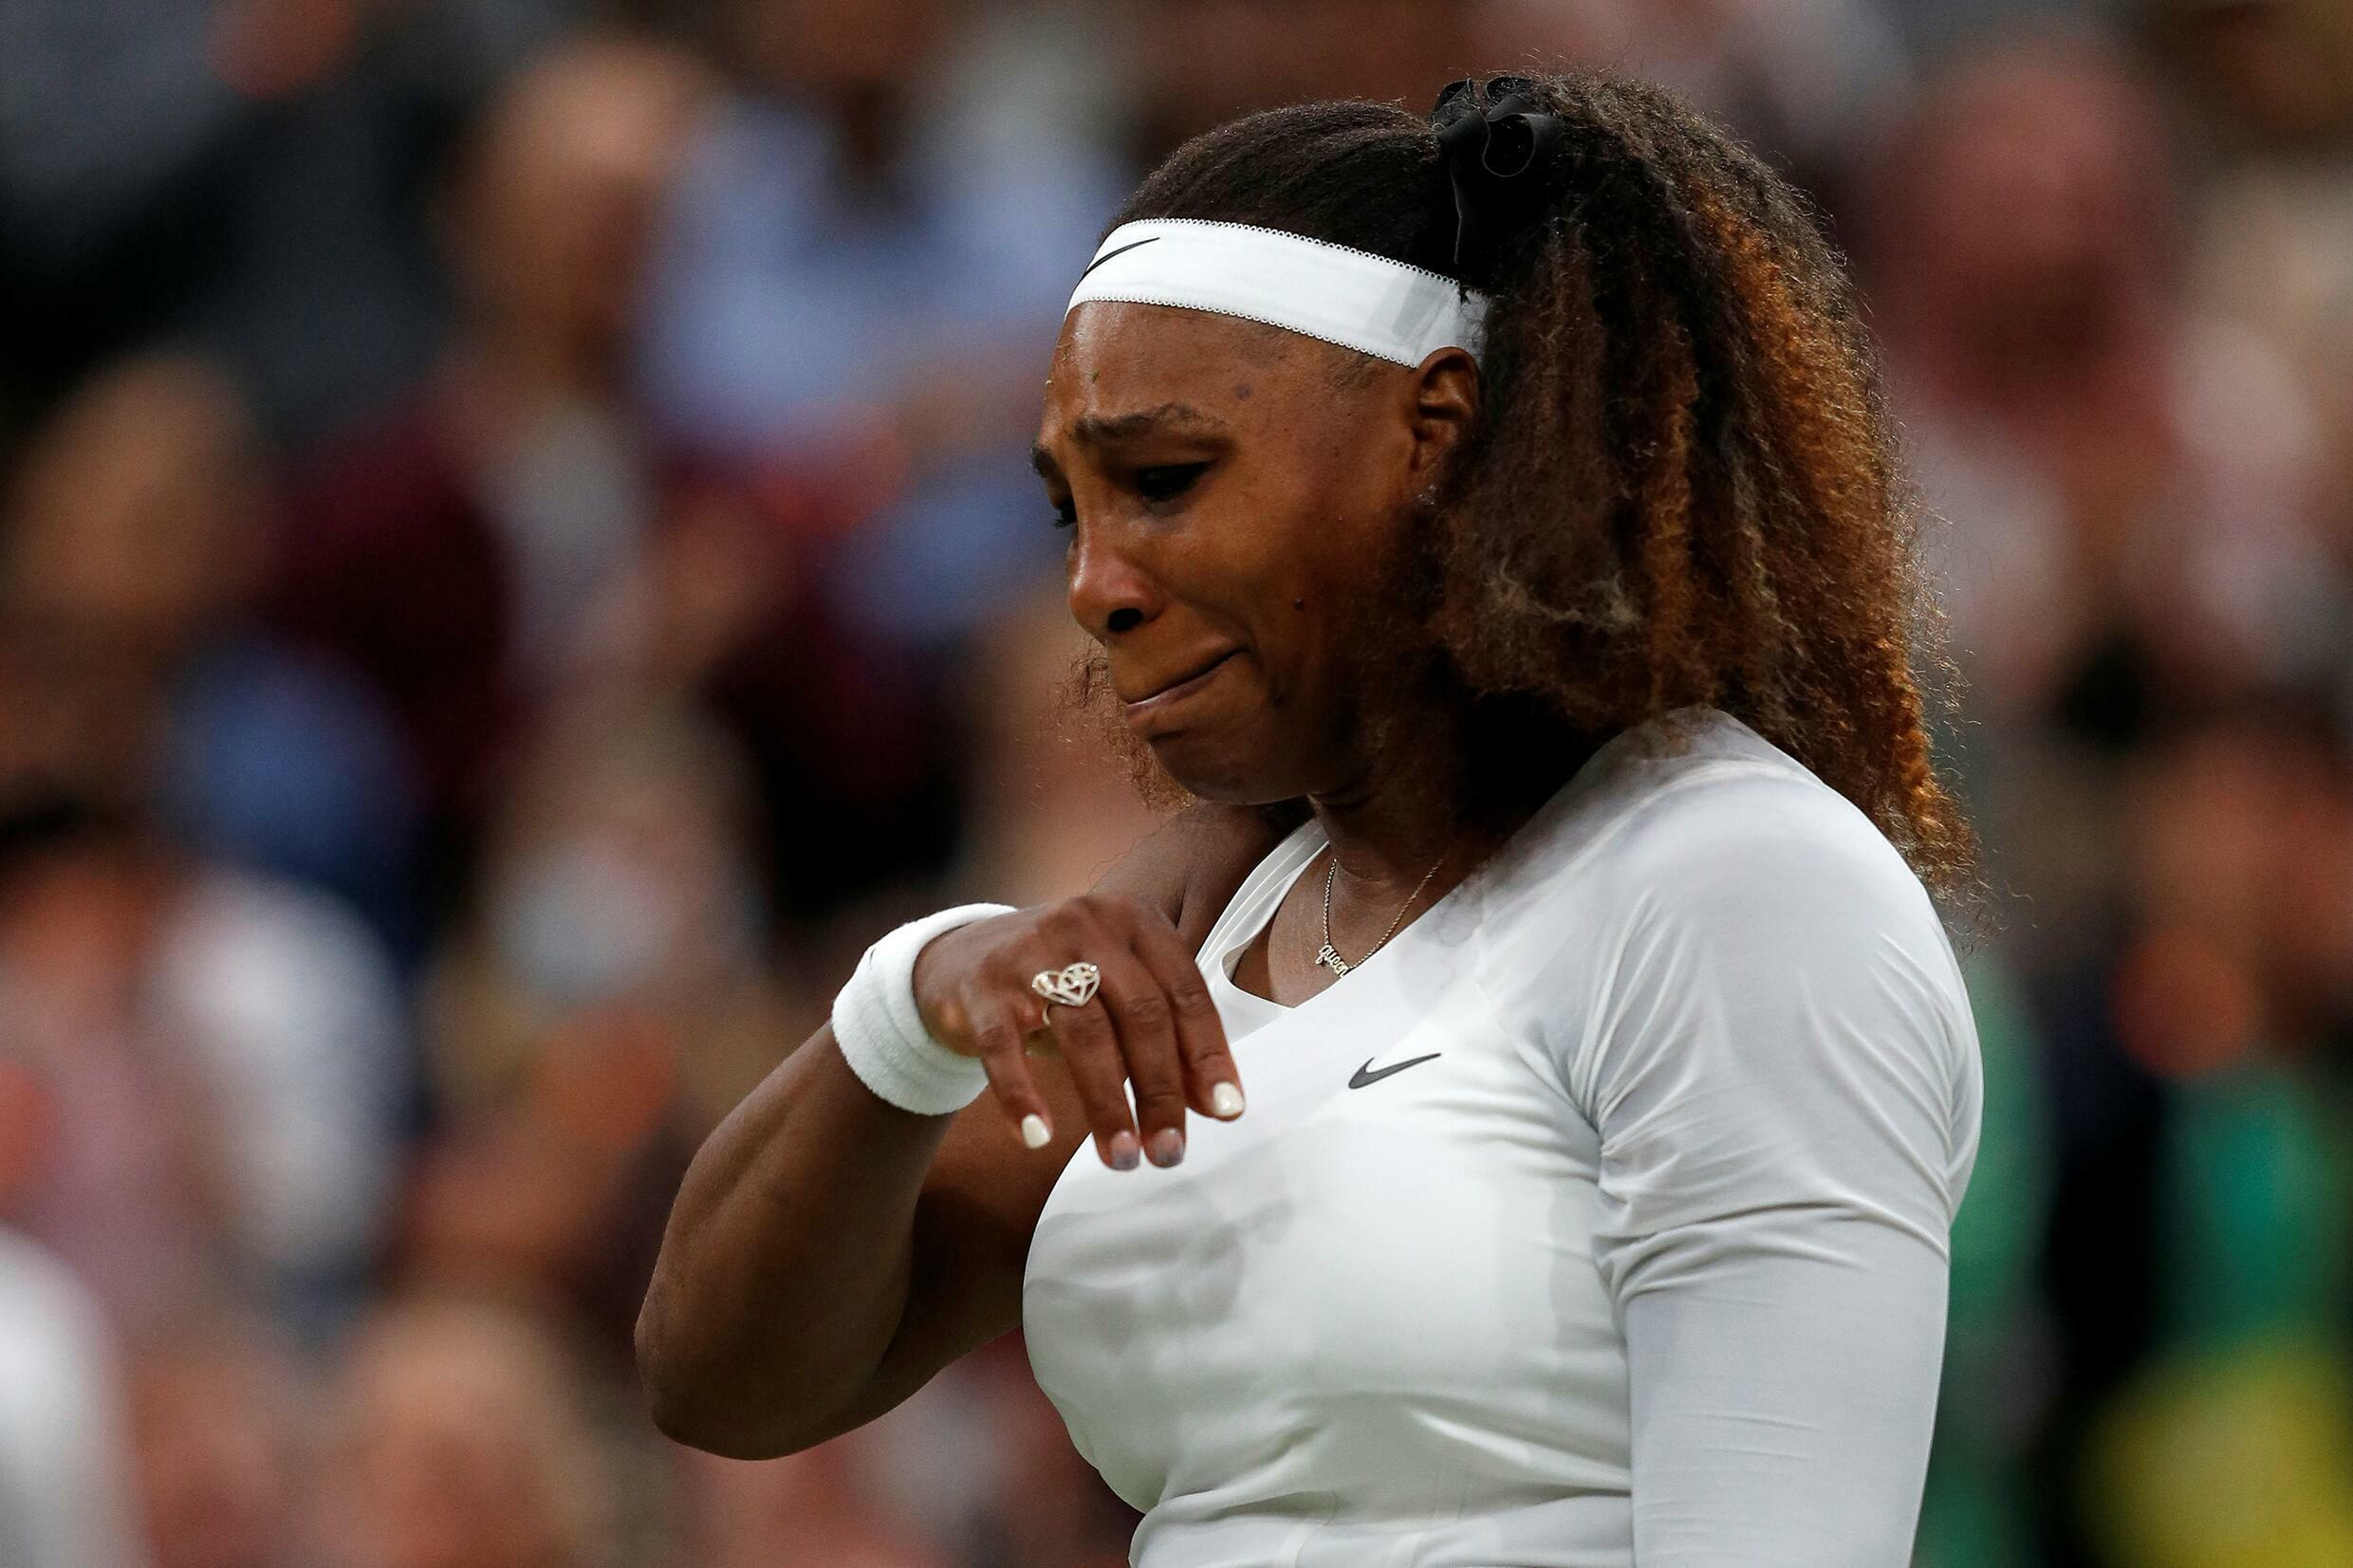 Seven-time champion Serena Williams retired from her first round match at Wimbledon due to injury.